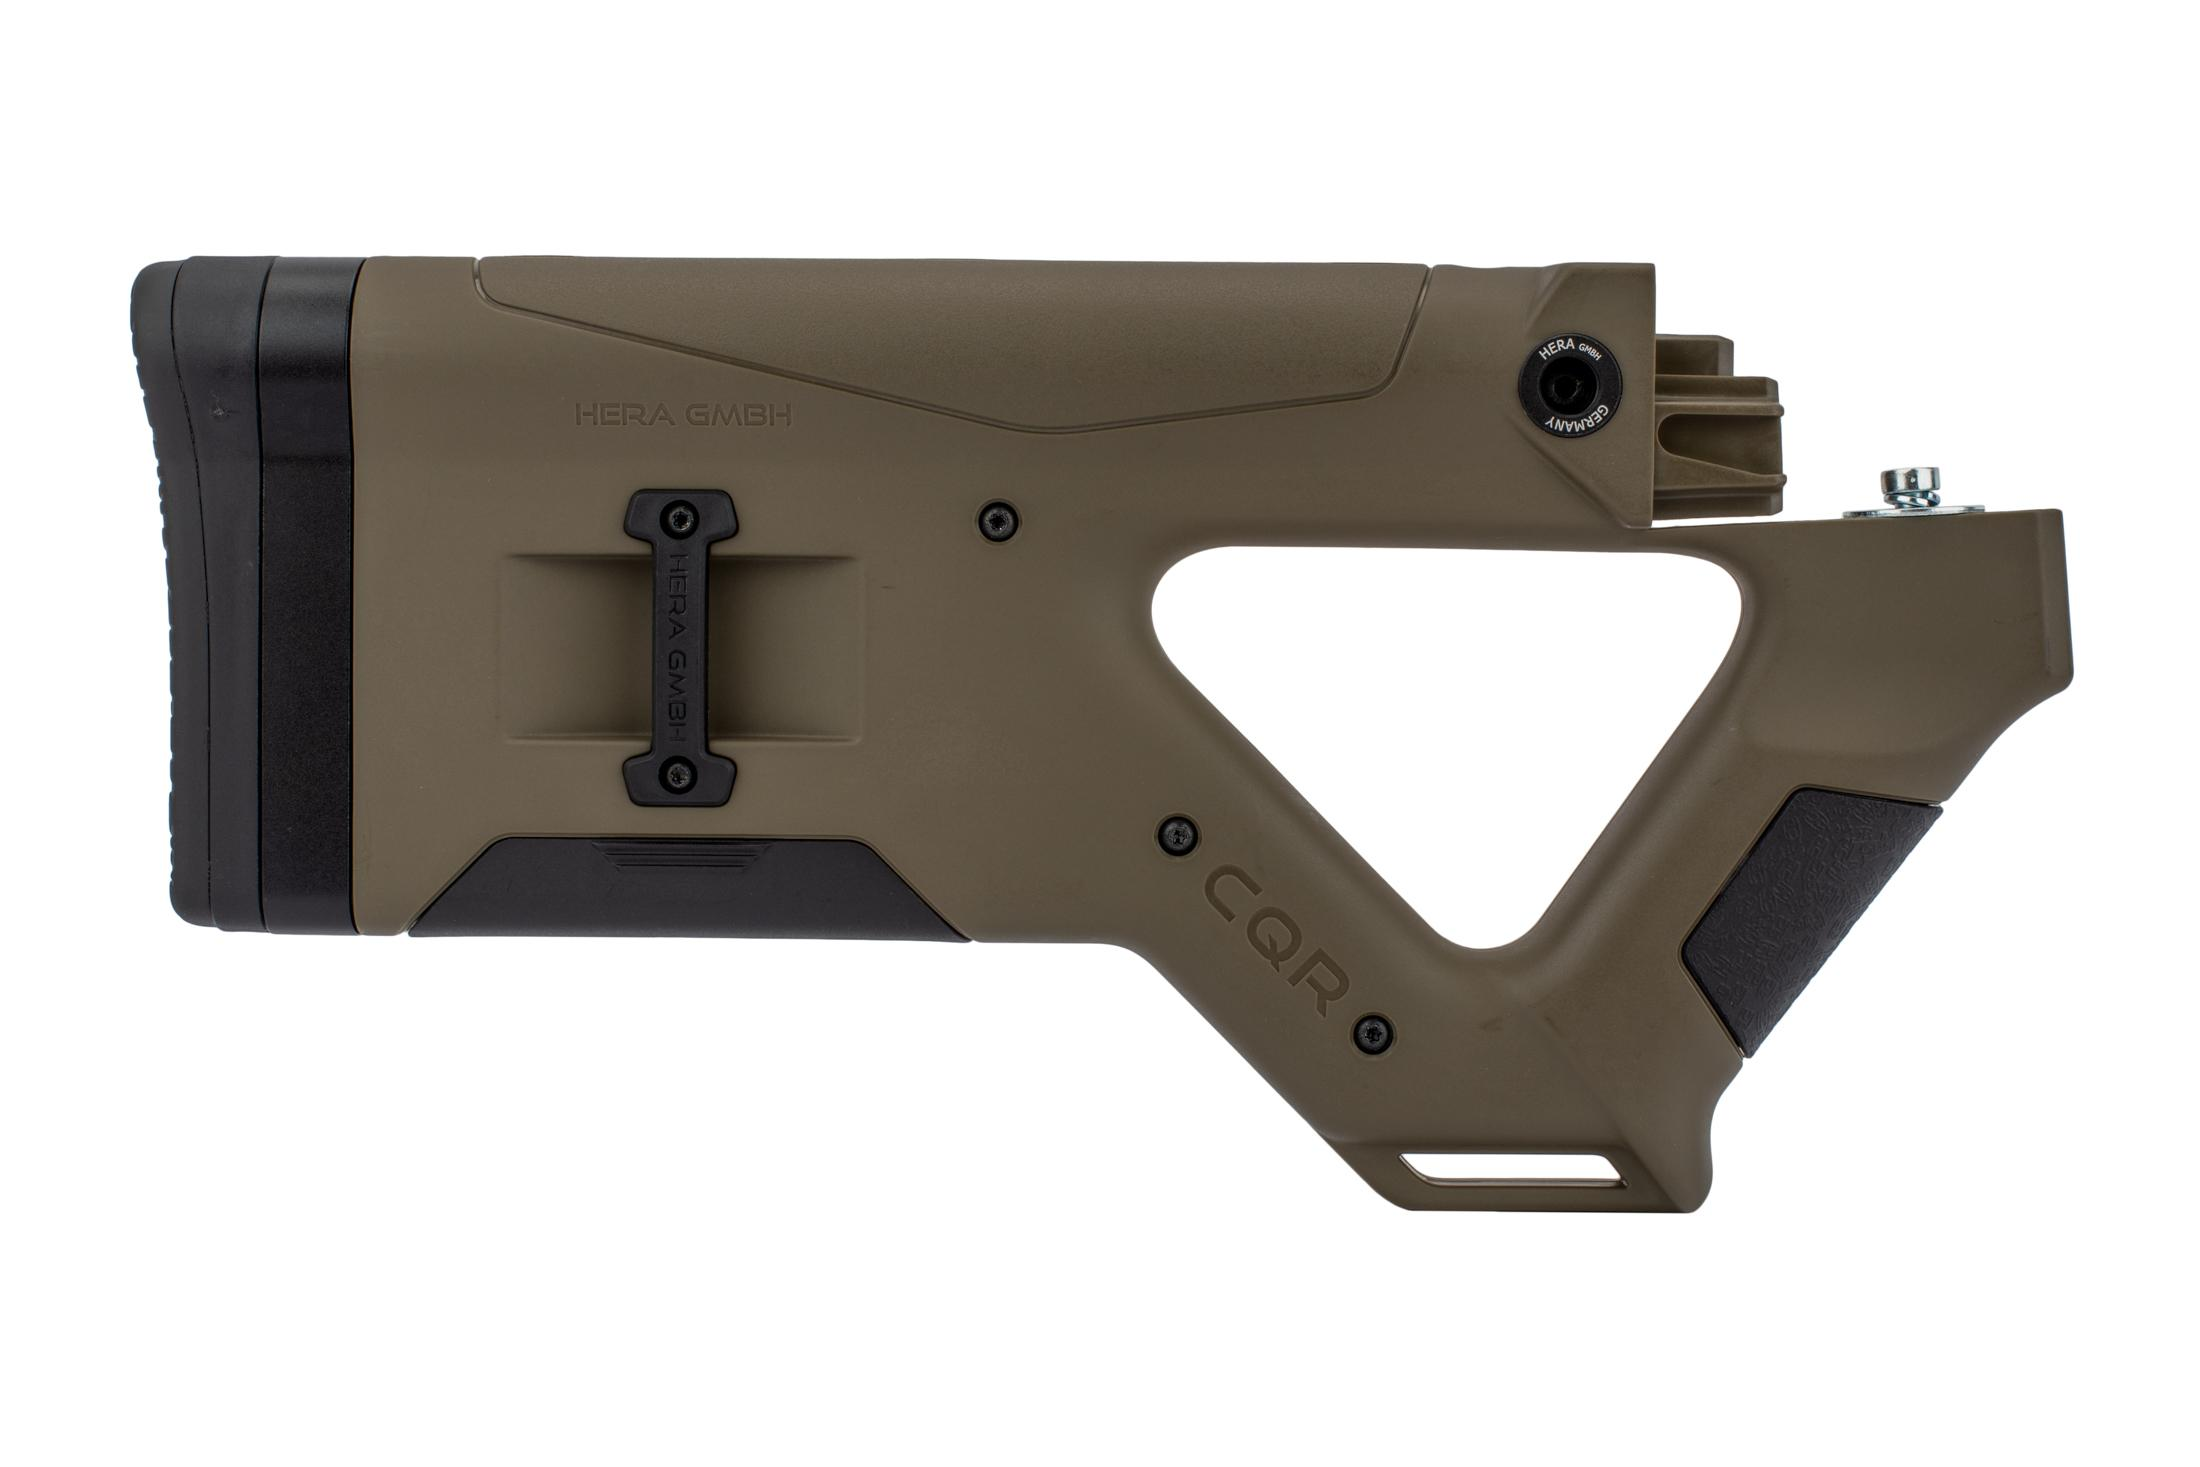 The Hera Arms AK47 CQR stock is made from a durable Tan polymer